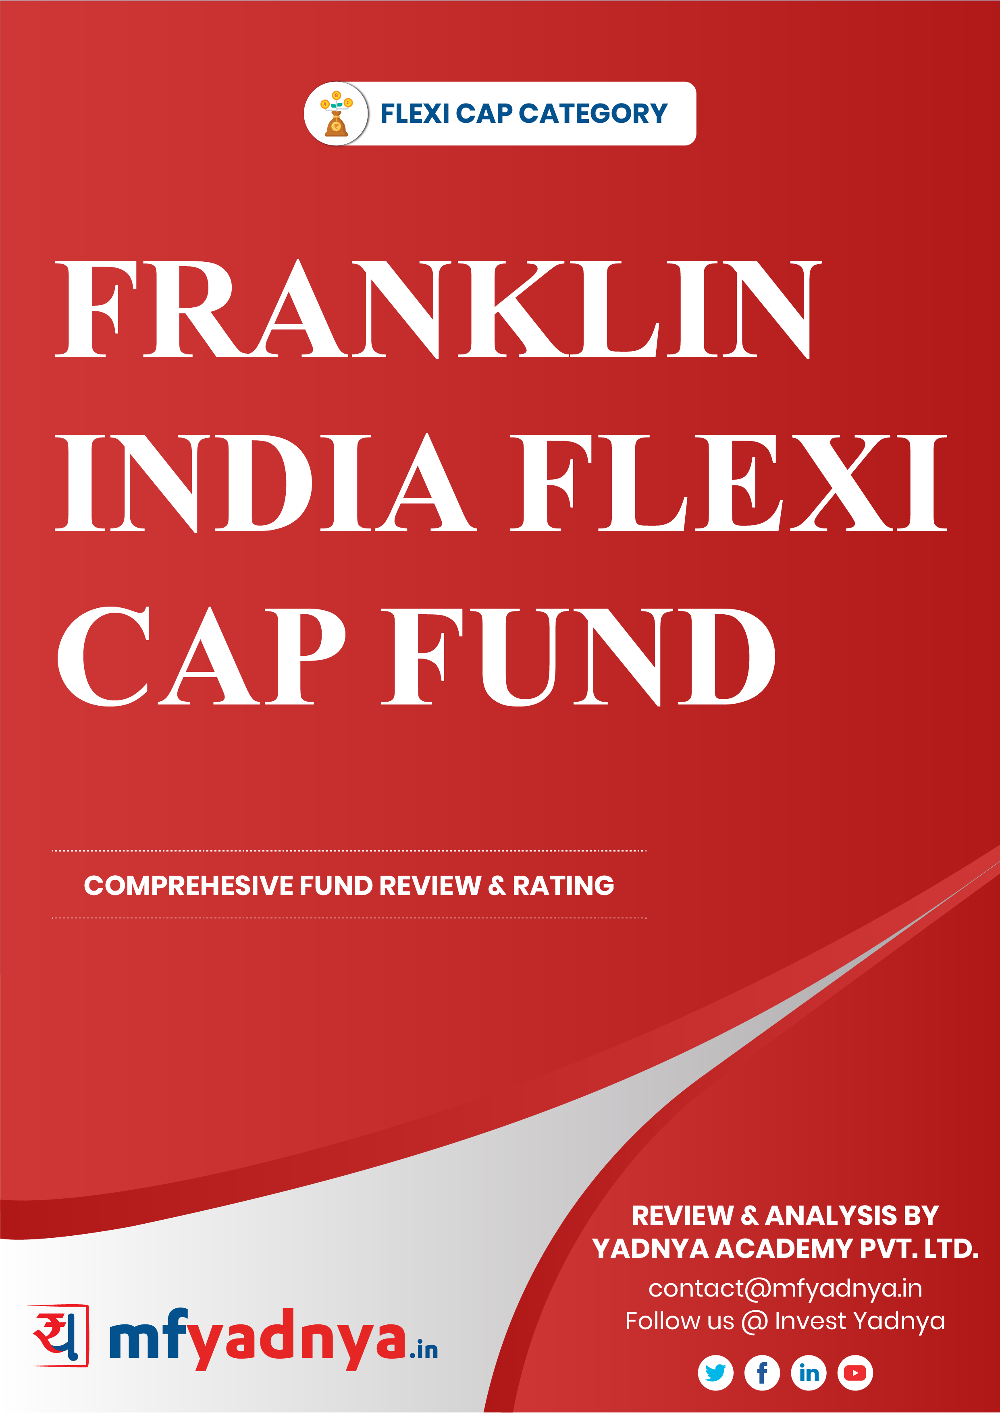 This e-book offers a comprehensive mutual fund review of Franklin India Flexi Cap Fund. It reviews the fund's return, ratio, allocation etc. ✔ Detailed Mutual Fund Analysis ✔ Latest Research Reports